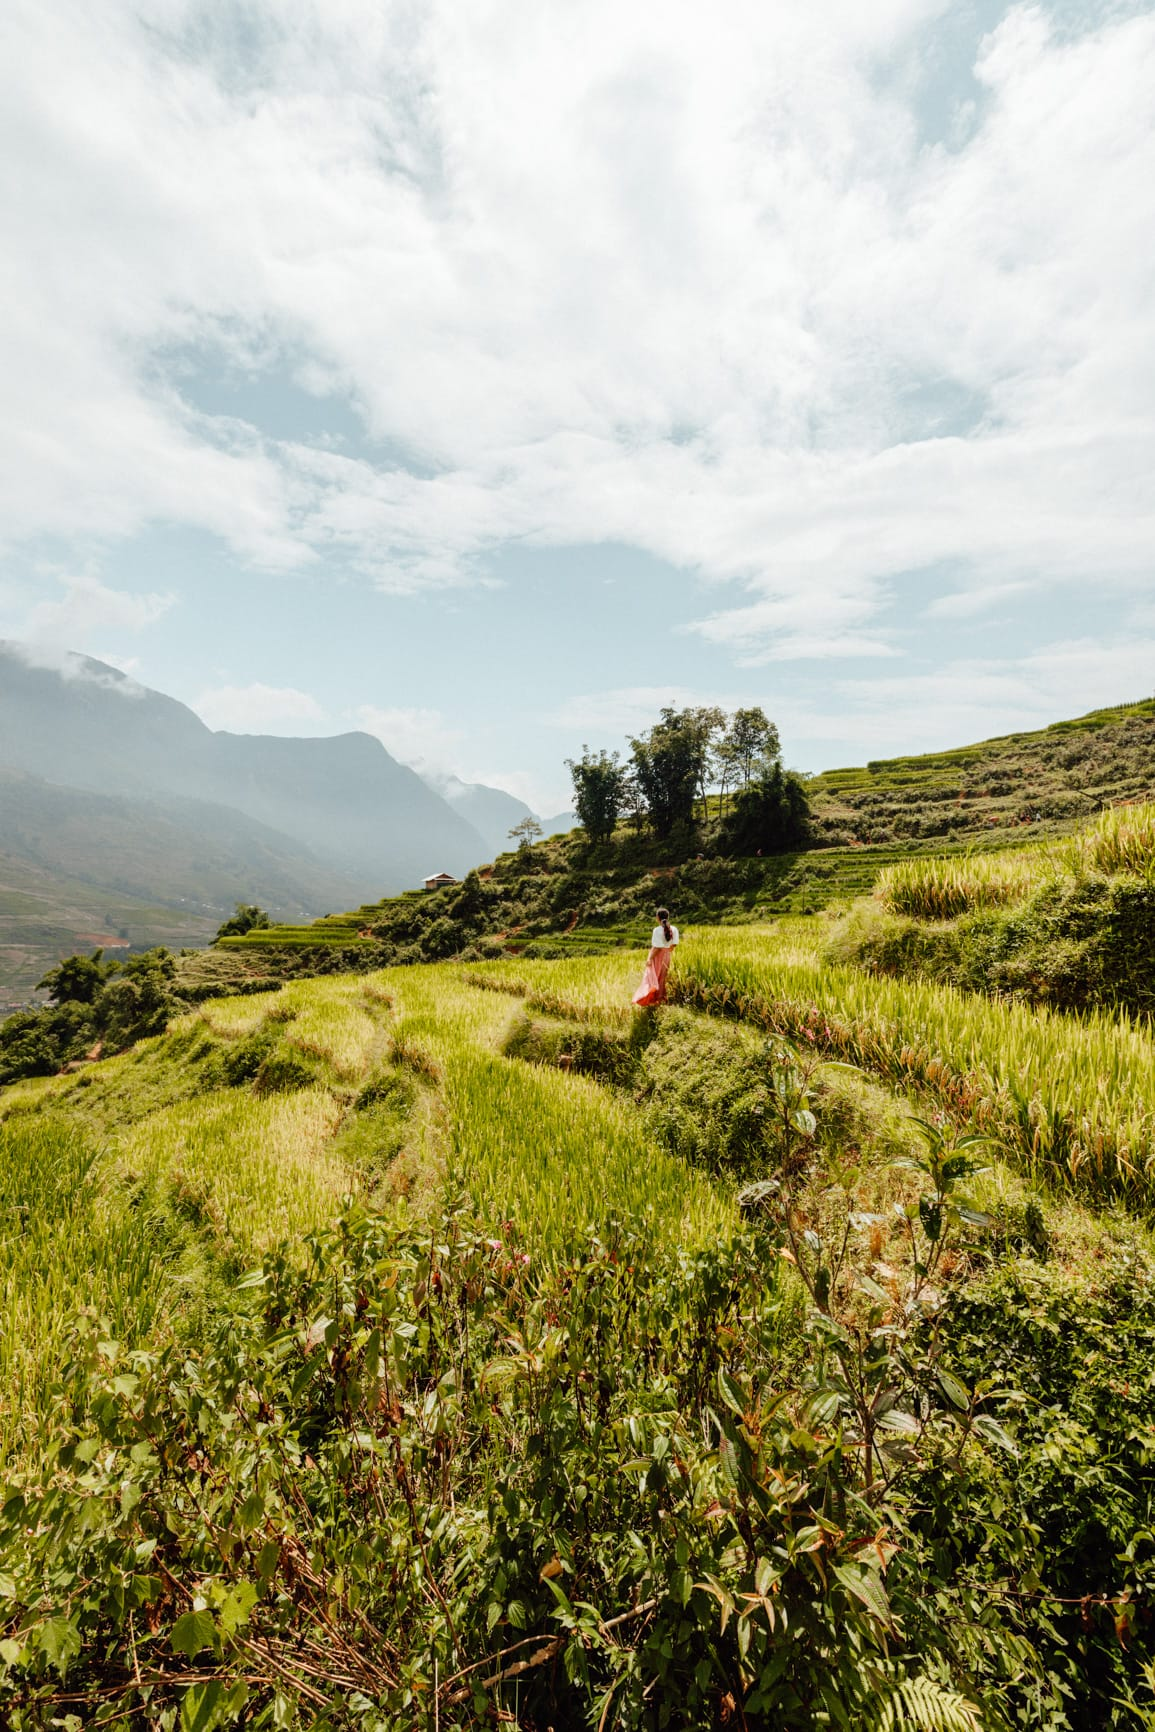 Sapa is one of the top places to visit in Vietnam.